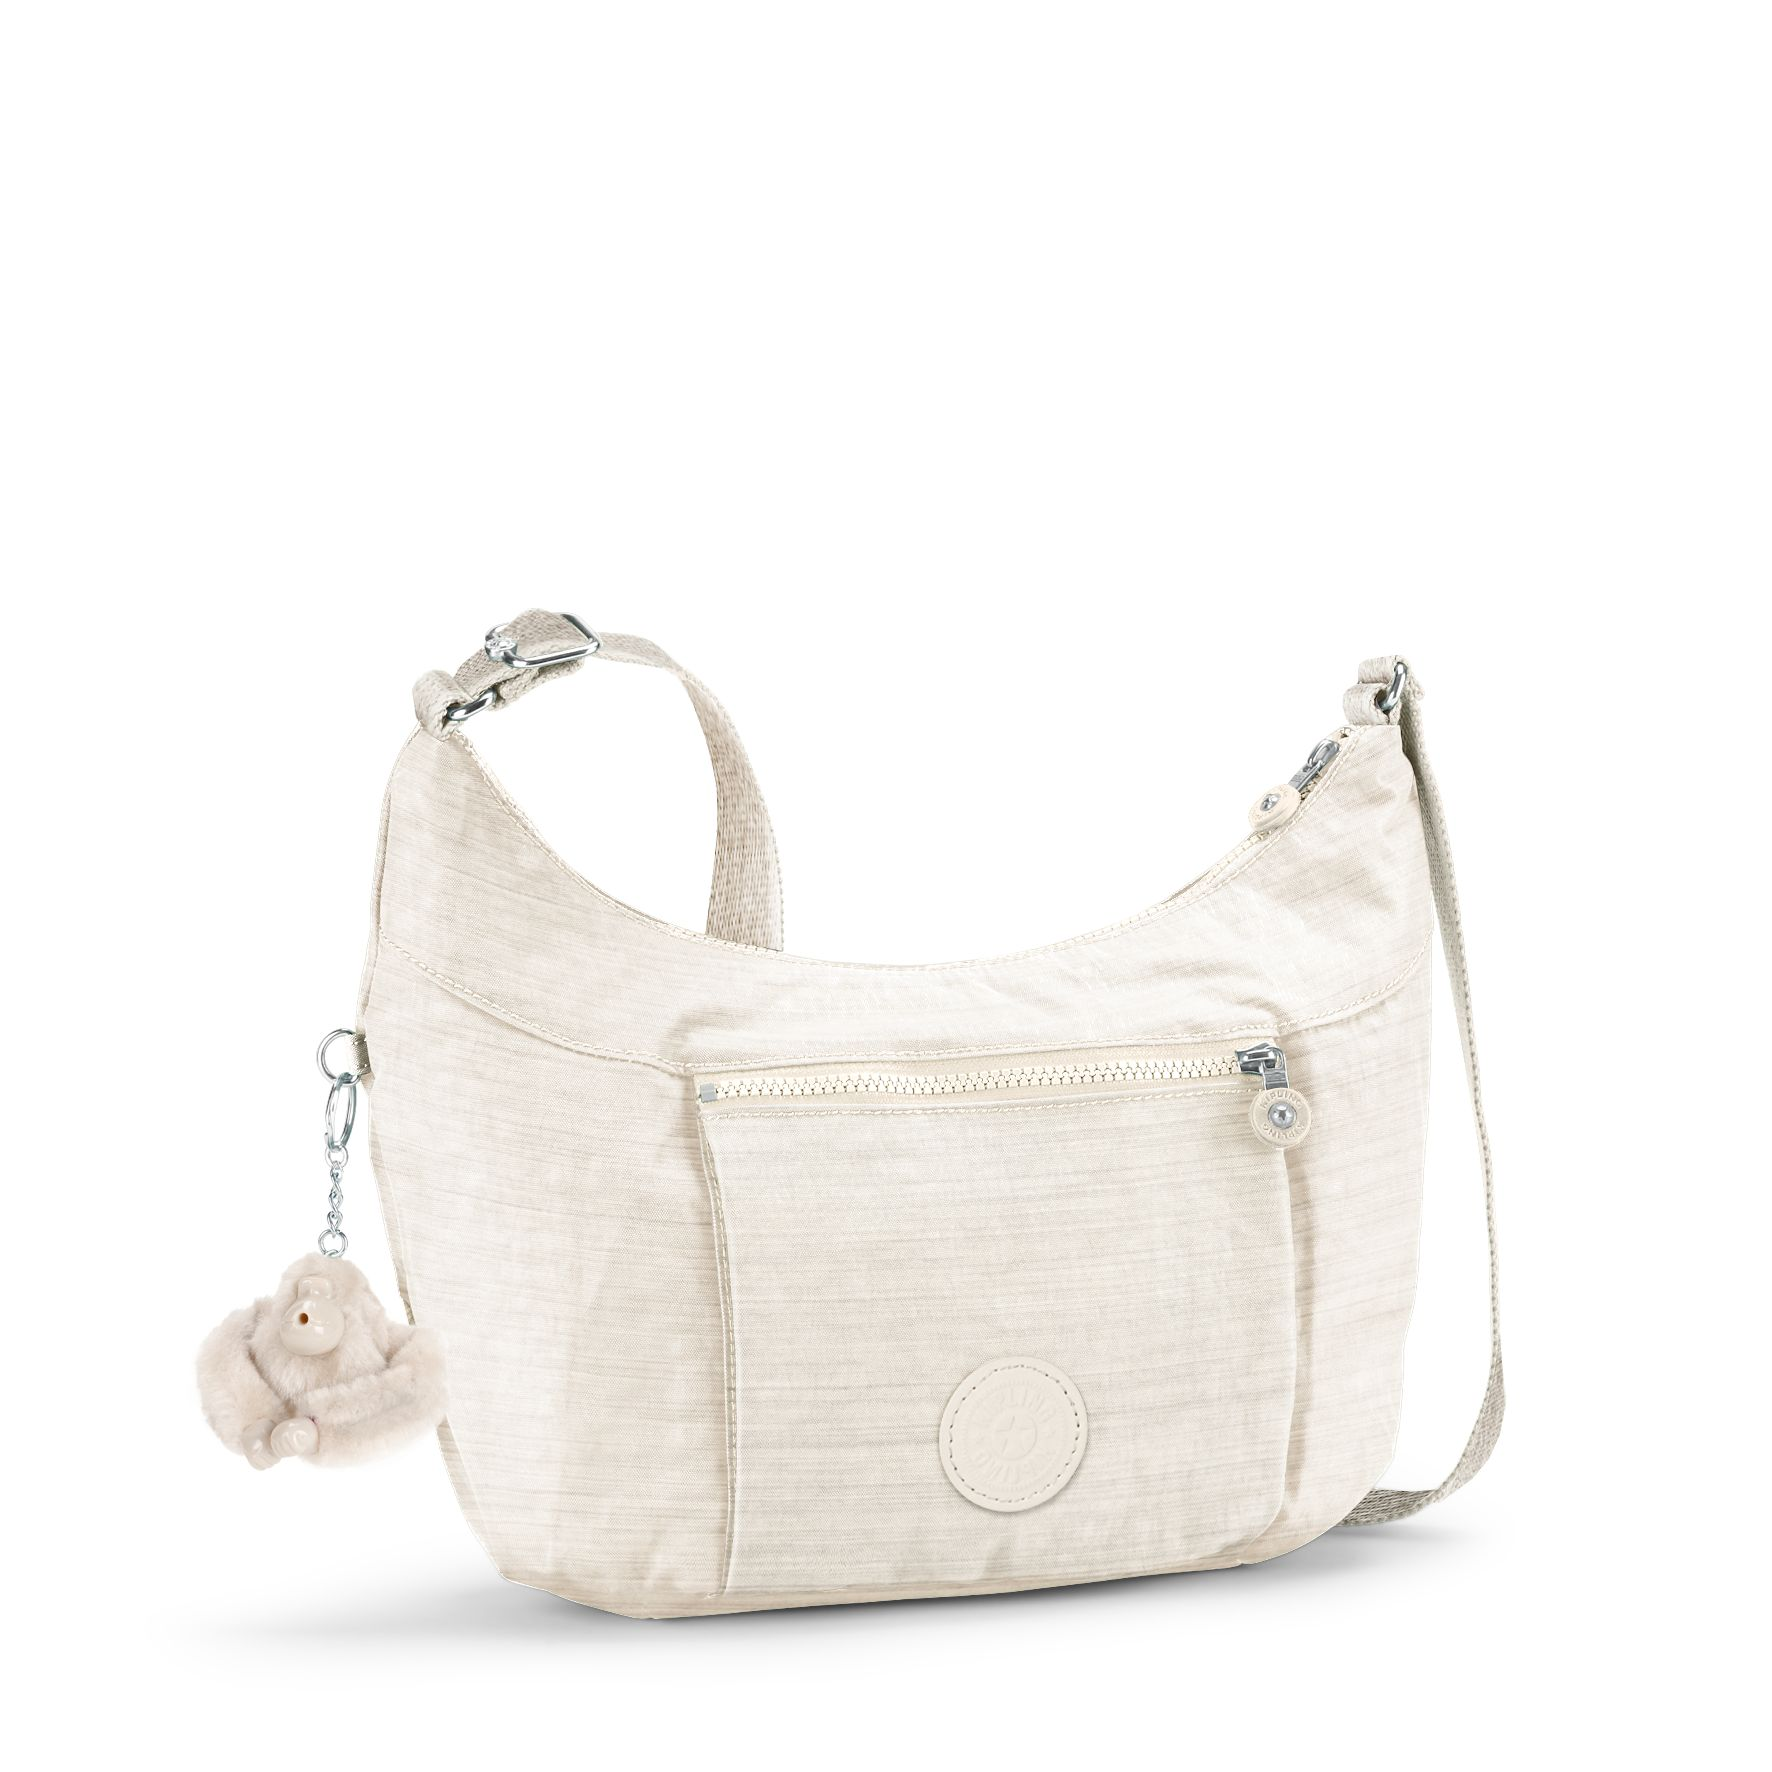 Jazmyn shoulder bag